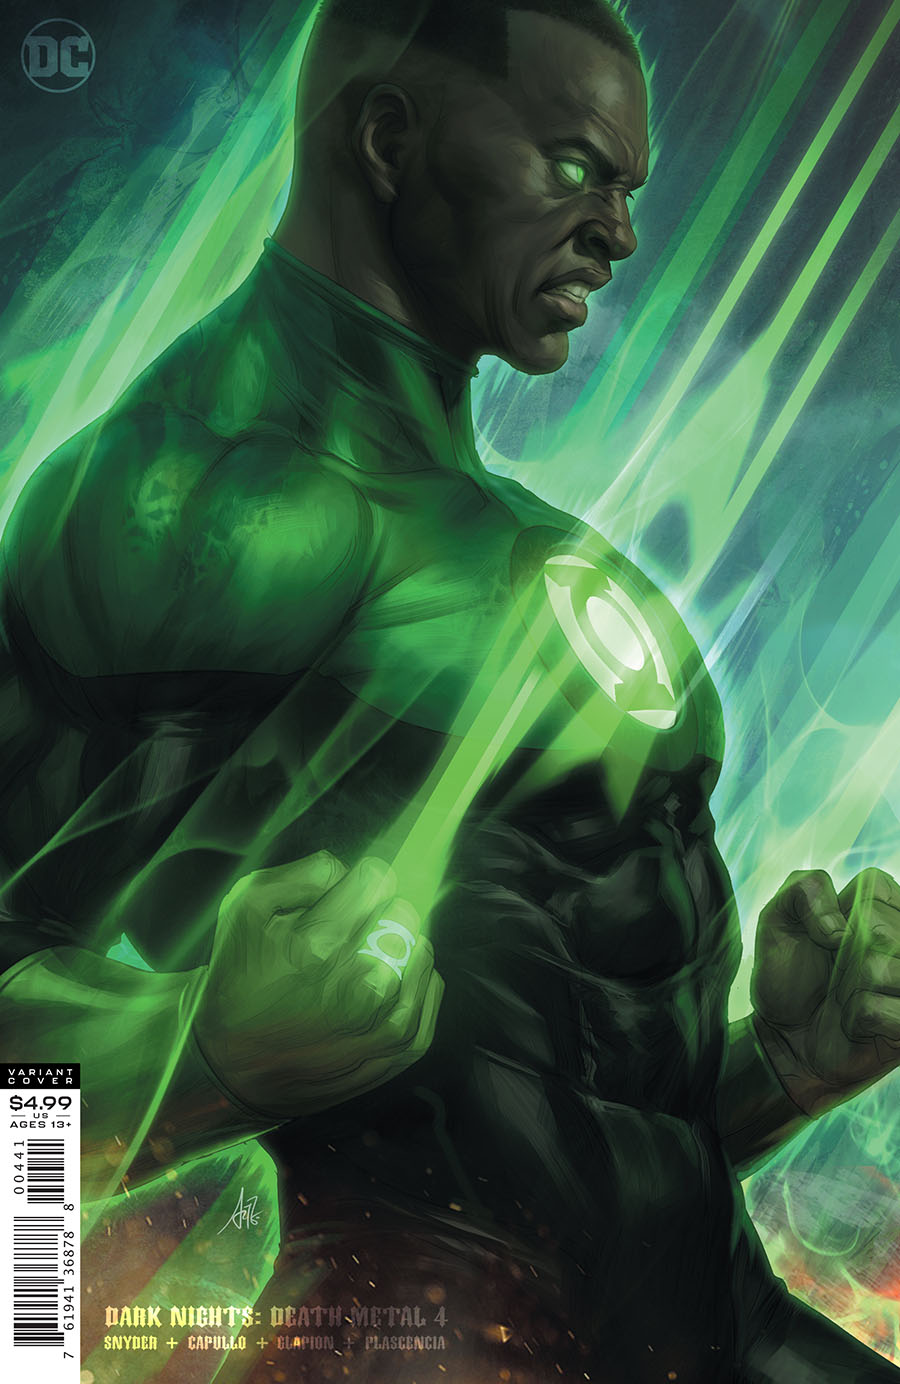 Dark Nights Death Metal #4 Cover D Variant Stanley Artgerm Lau Green Lantern John Stewart Cover